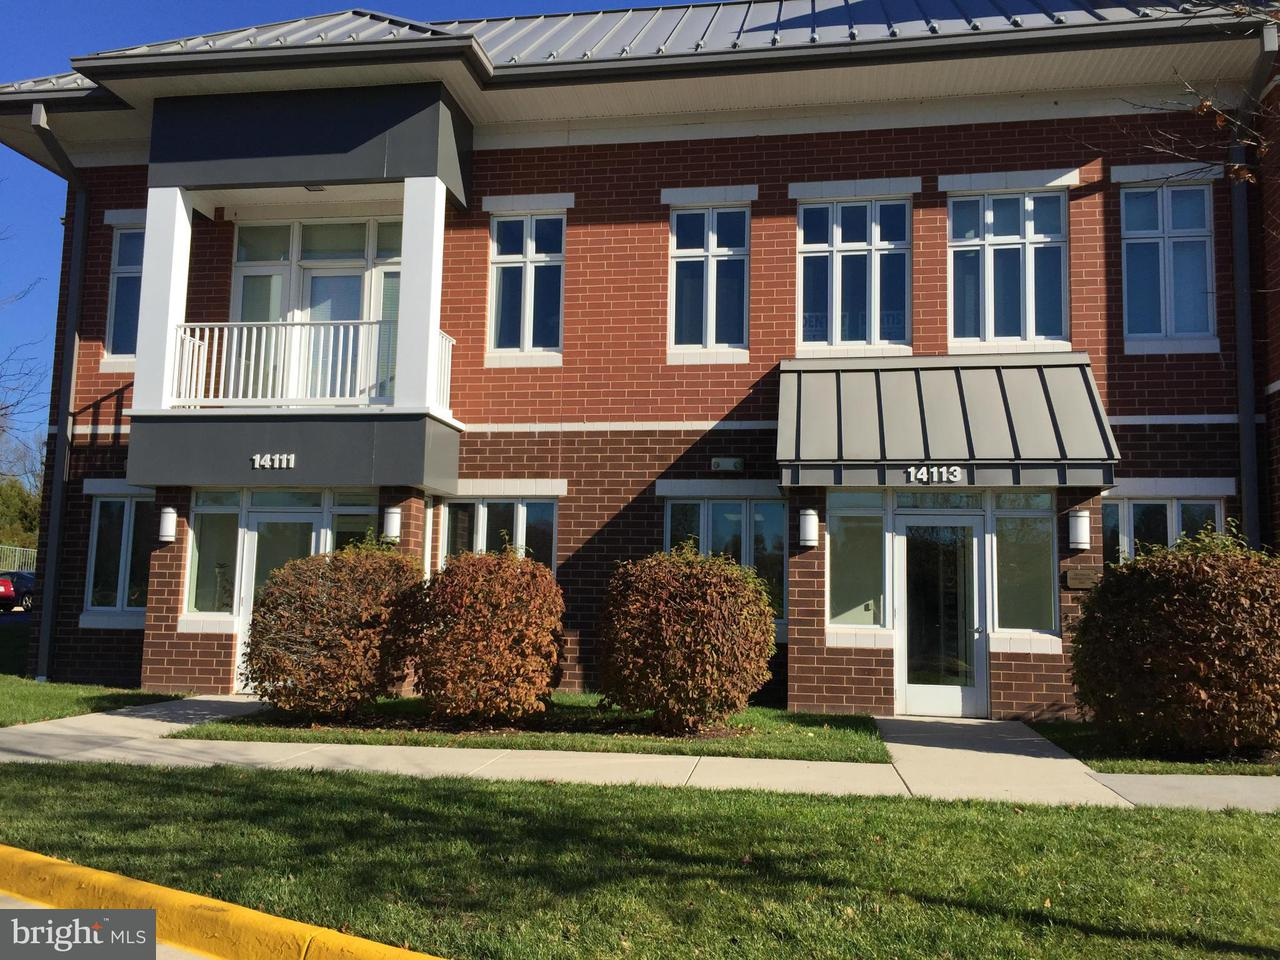 Comercial por un Venta en 14111 ROBERT PARIS Court 14111 ROBERT PARIS Court Chantilly, Virginia 20151 Estados Unidos